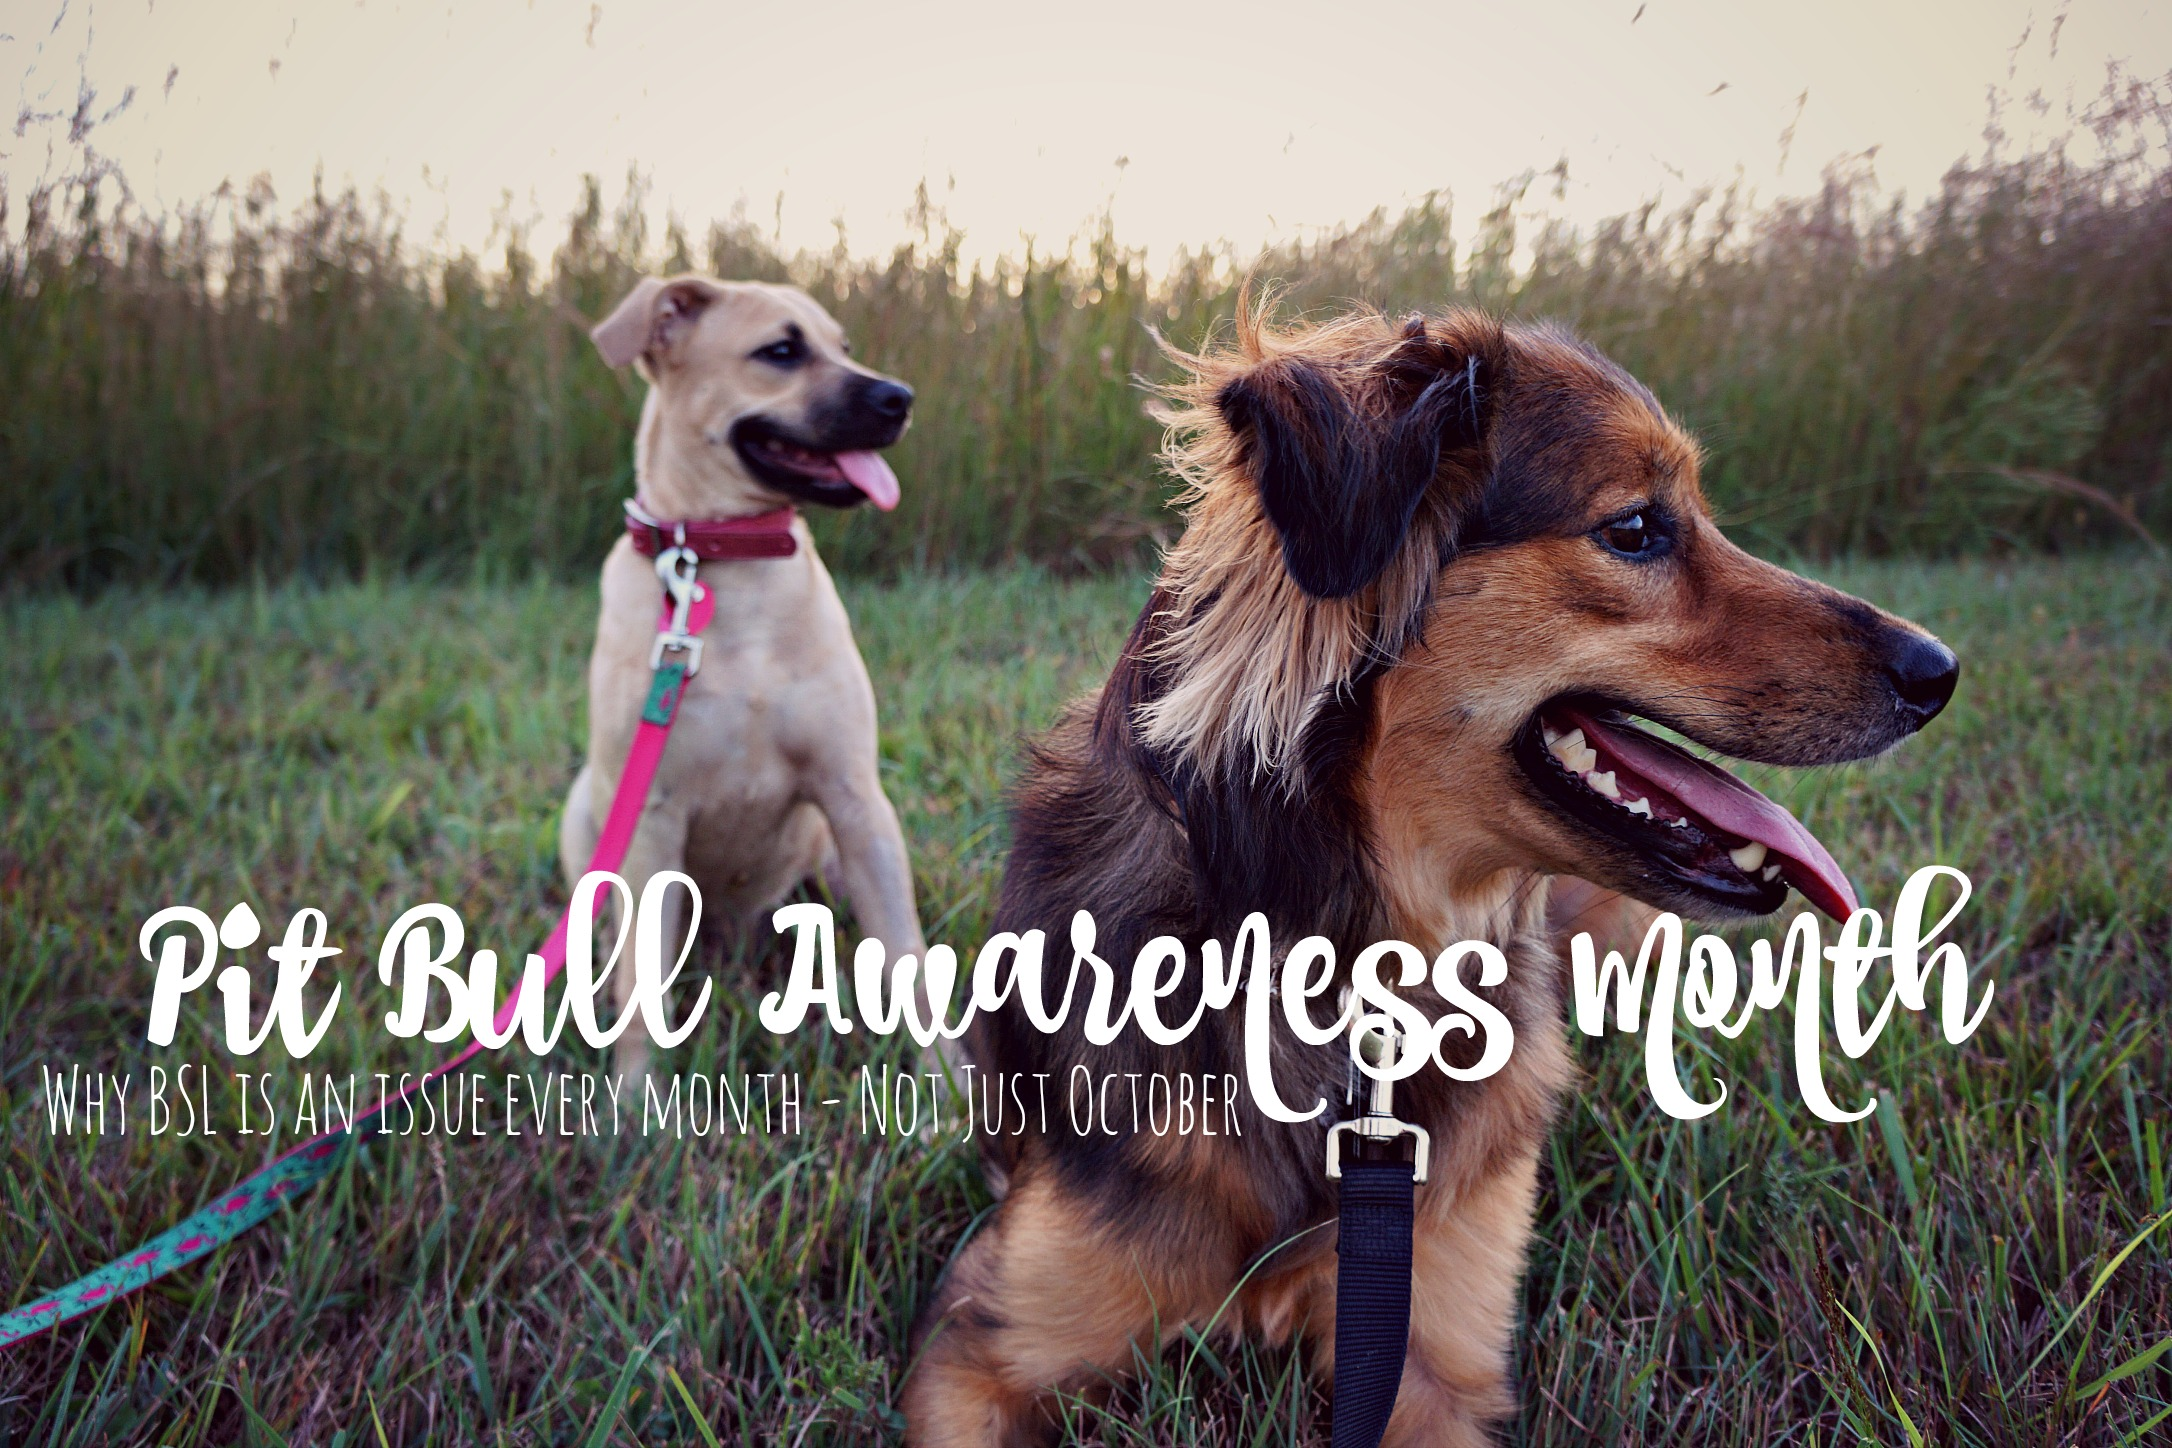 Pit Bull Awareness Month is Every Month